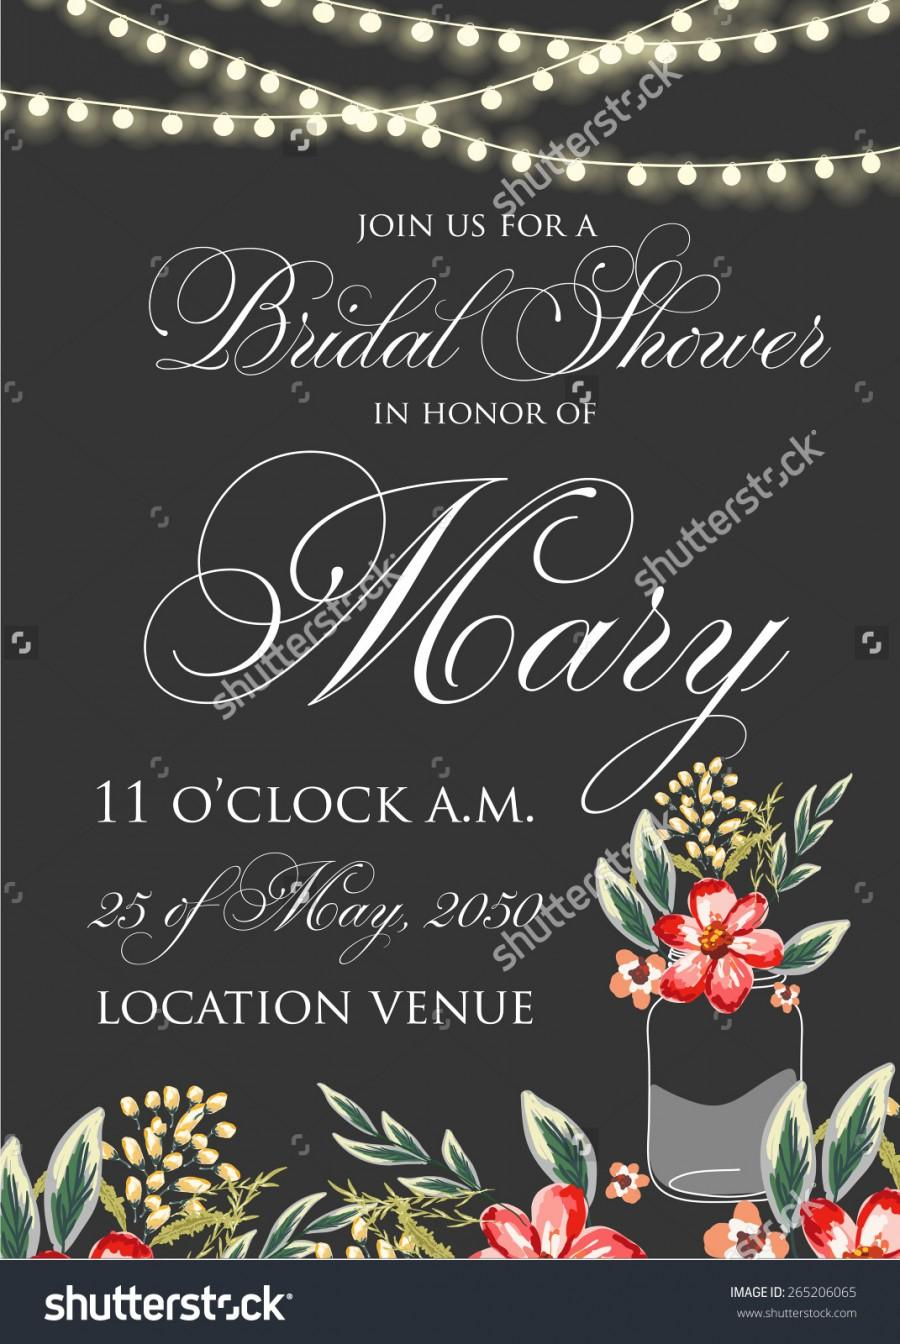 Wedding - Bridal shower invitation